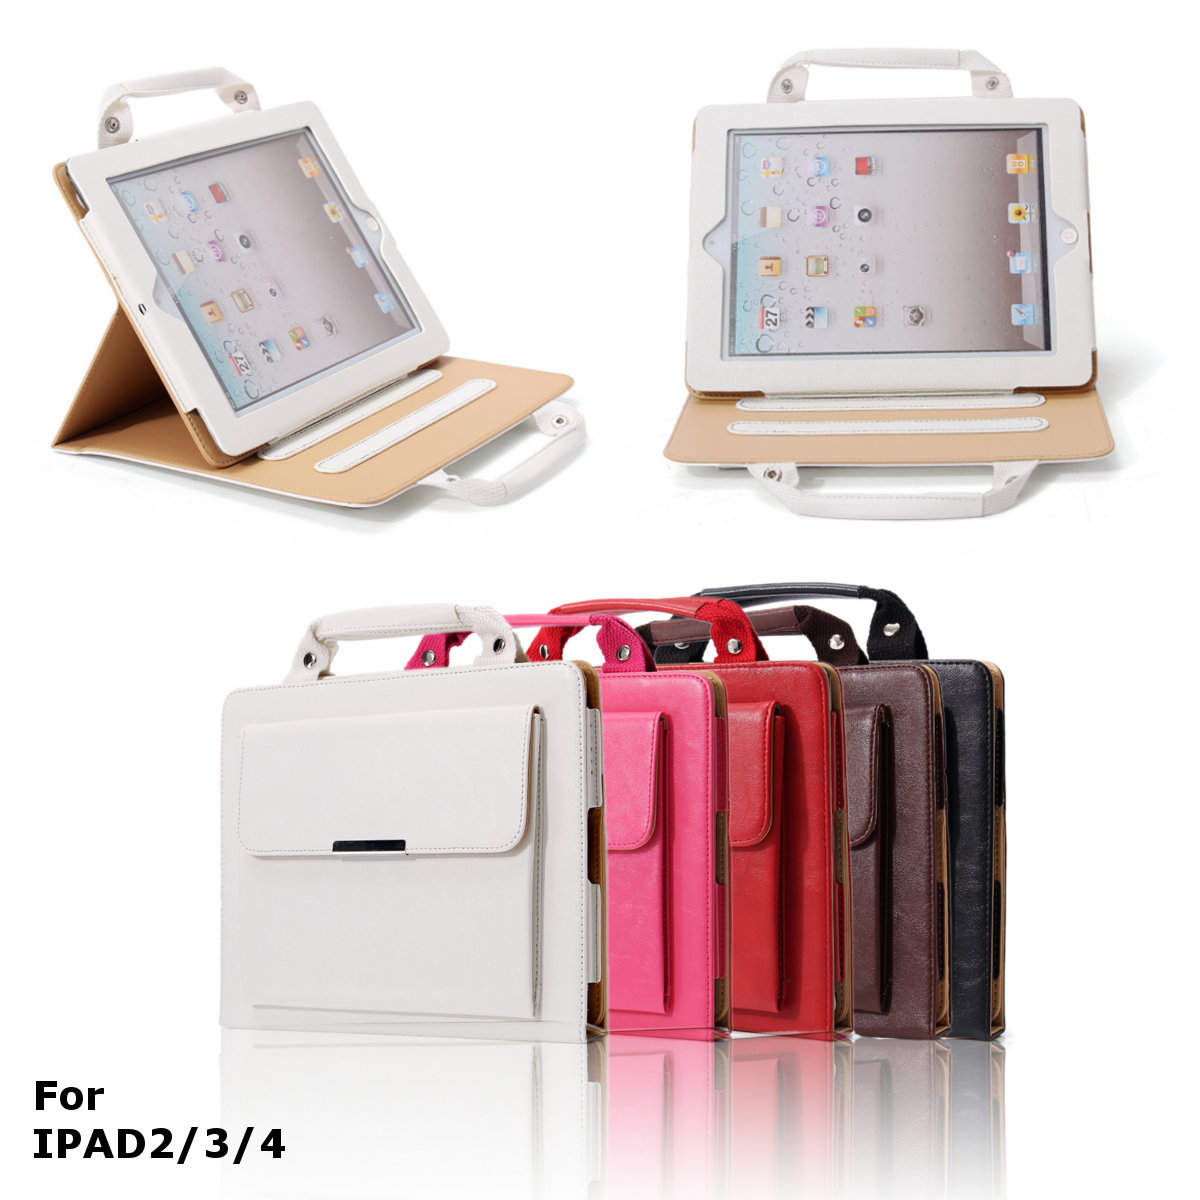 PU Leather Stand Case with Handle & Storage Compartment for iPad 2 3 4 - Perfect for Travel